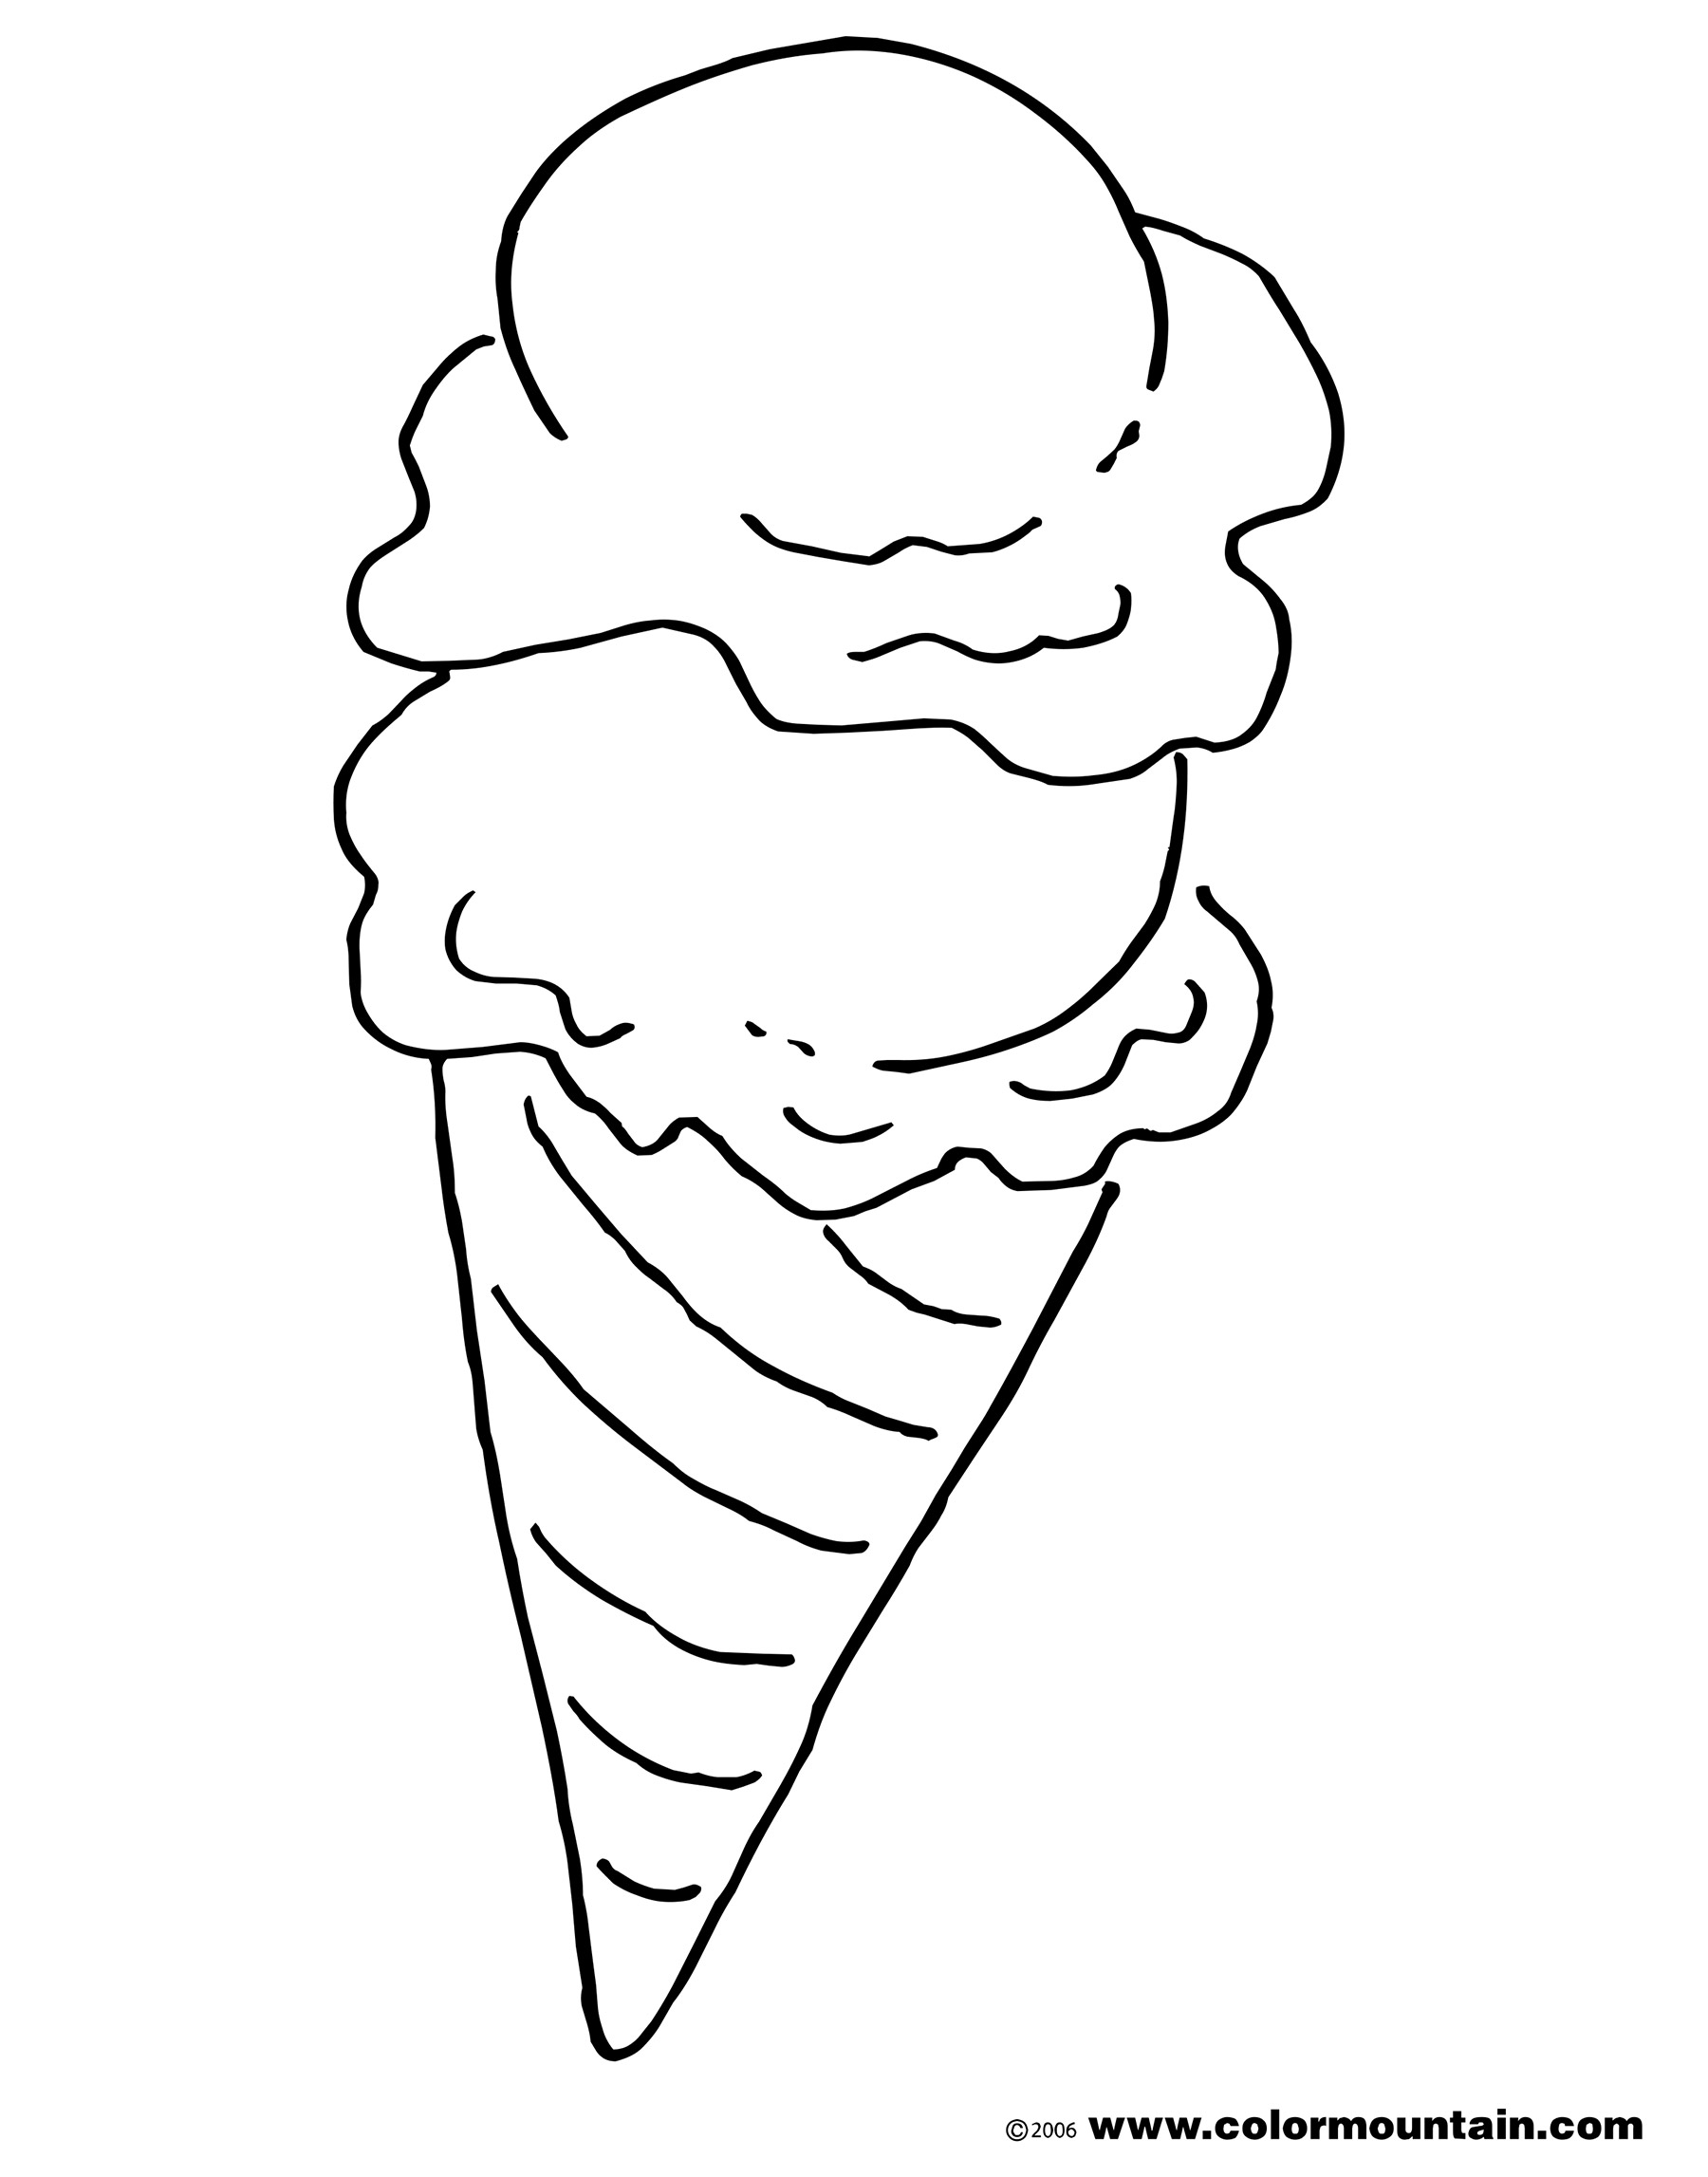 Coloring Ice Cream Bars, popsicle coloring page online coloring.